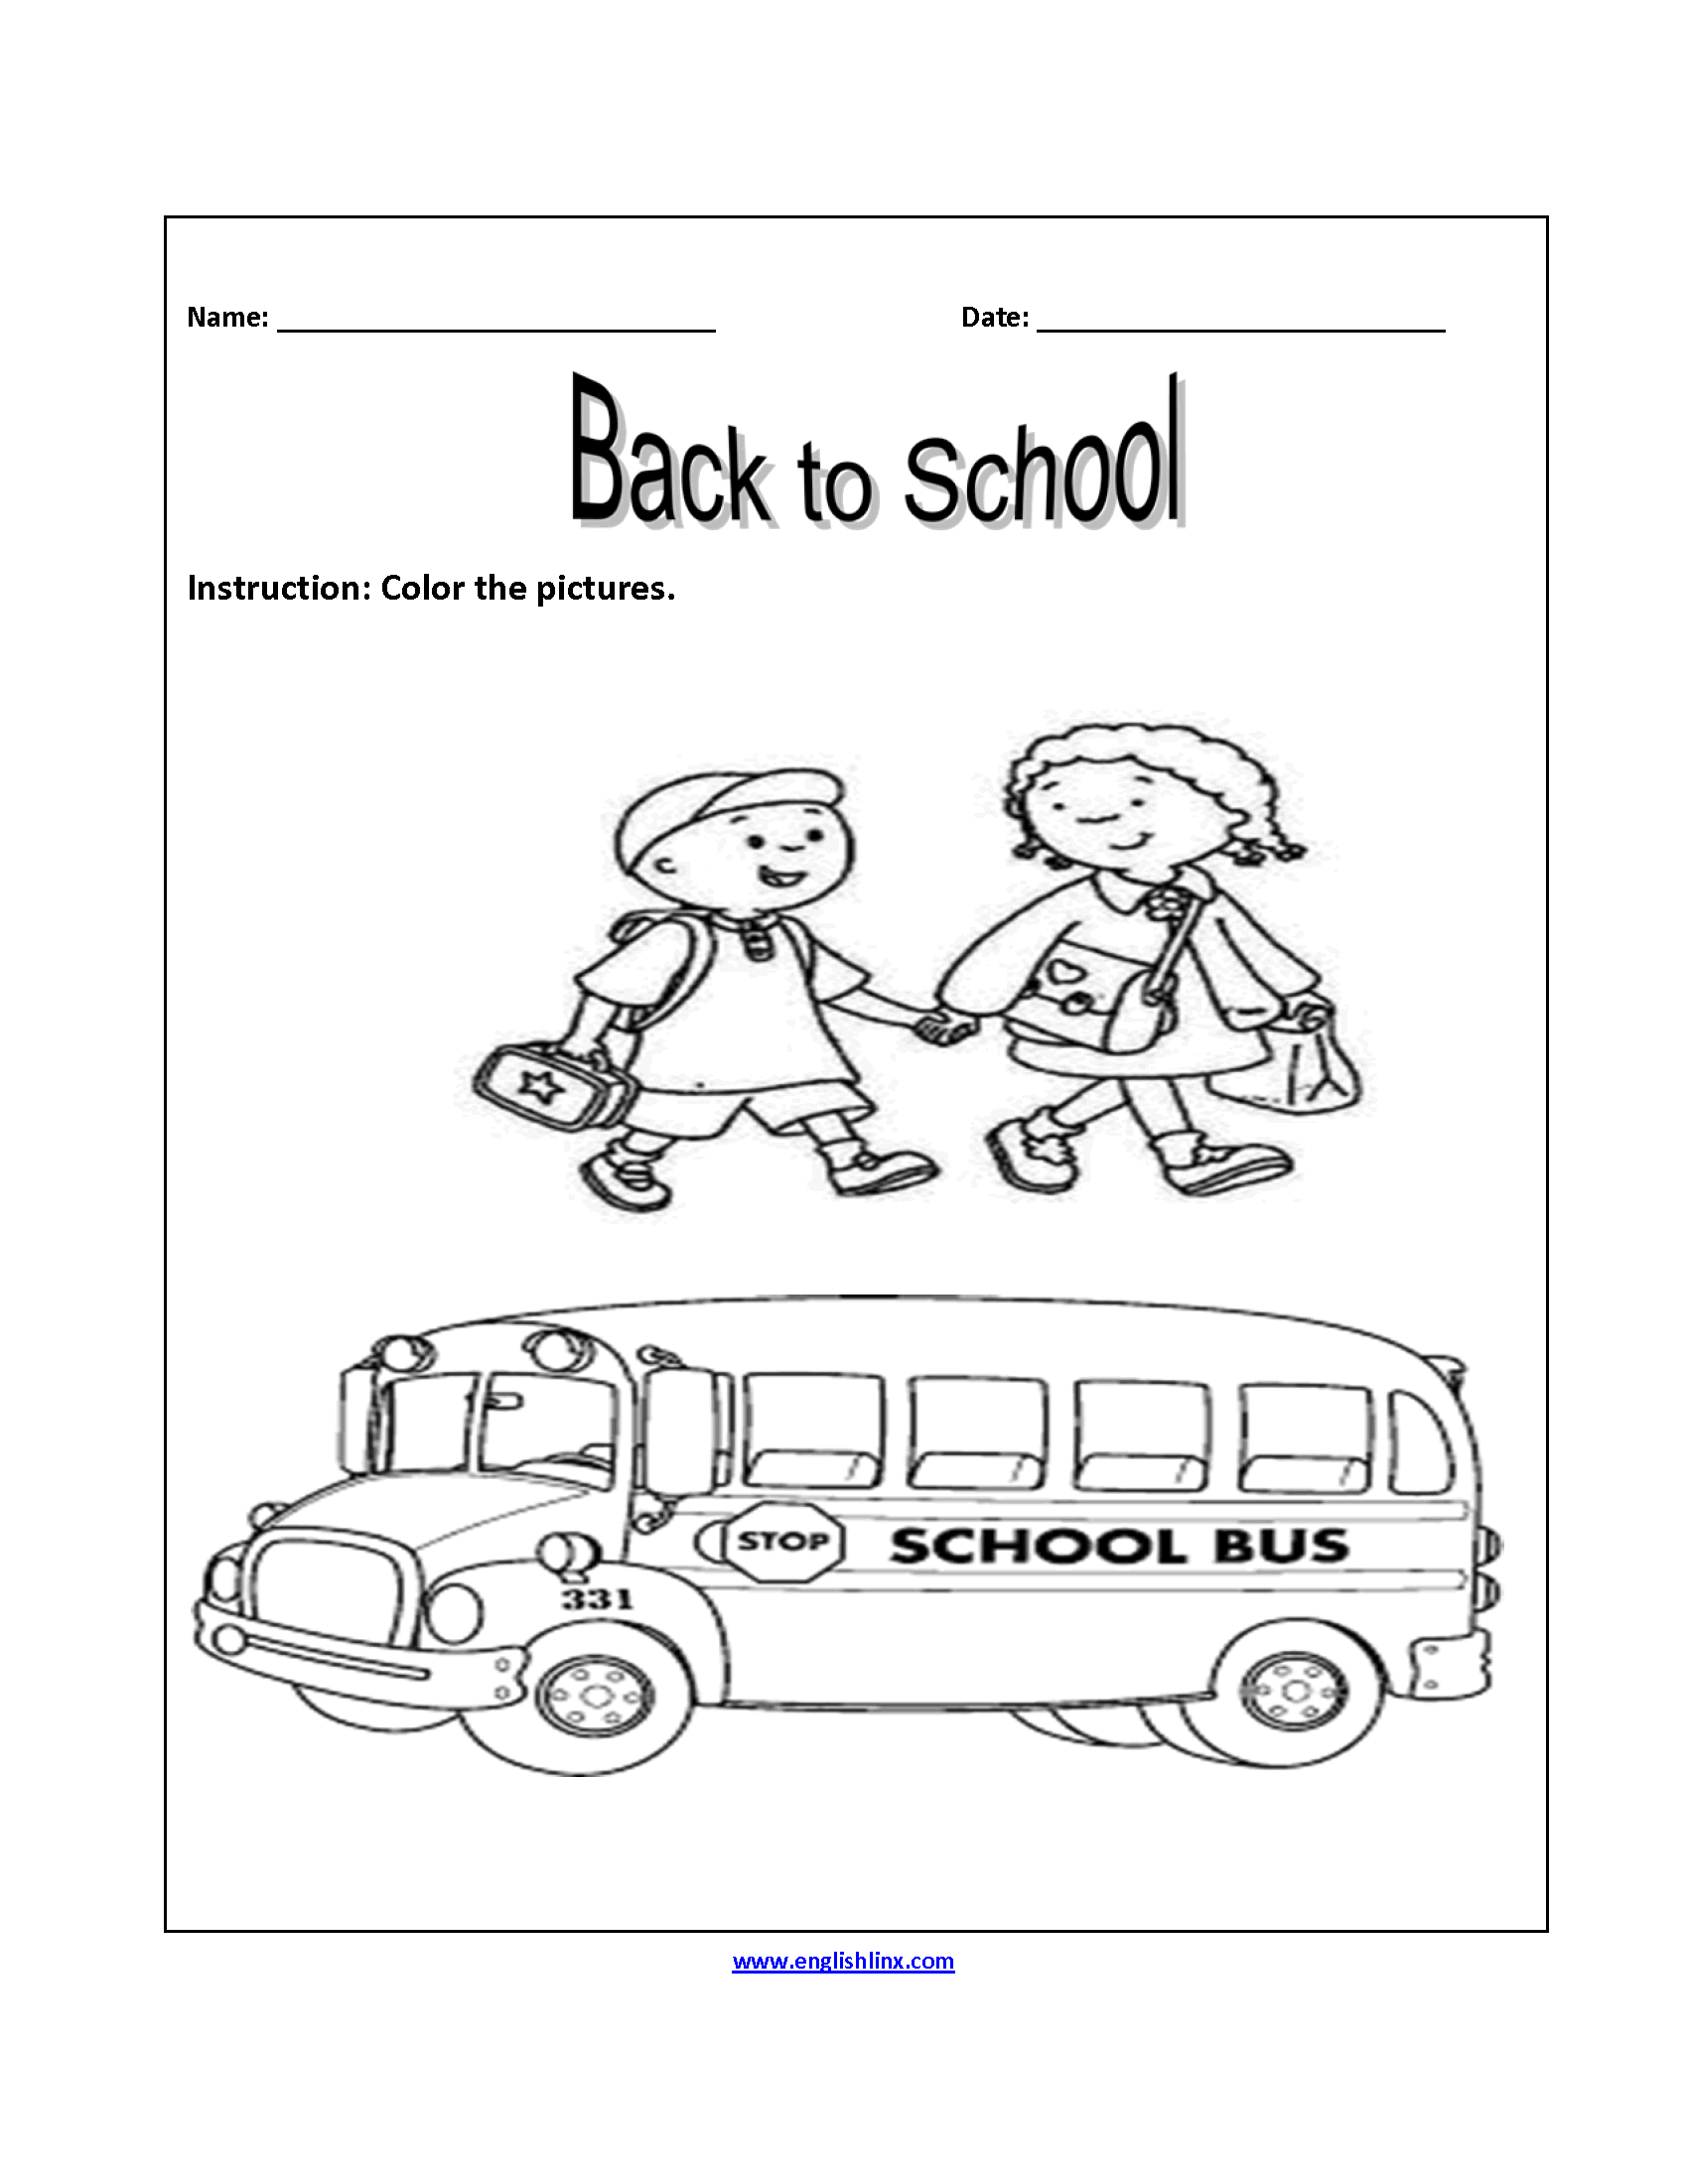 School Worksheets For 3rd Grade : Back to school worksheets color the pictures